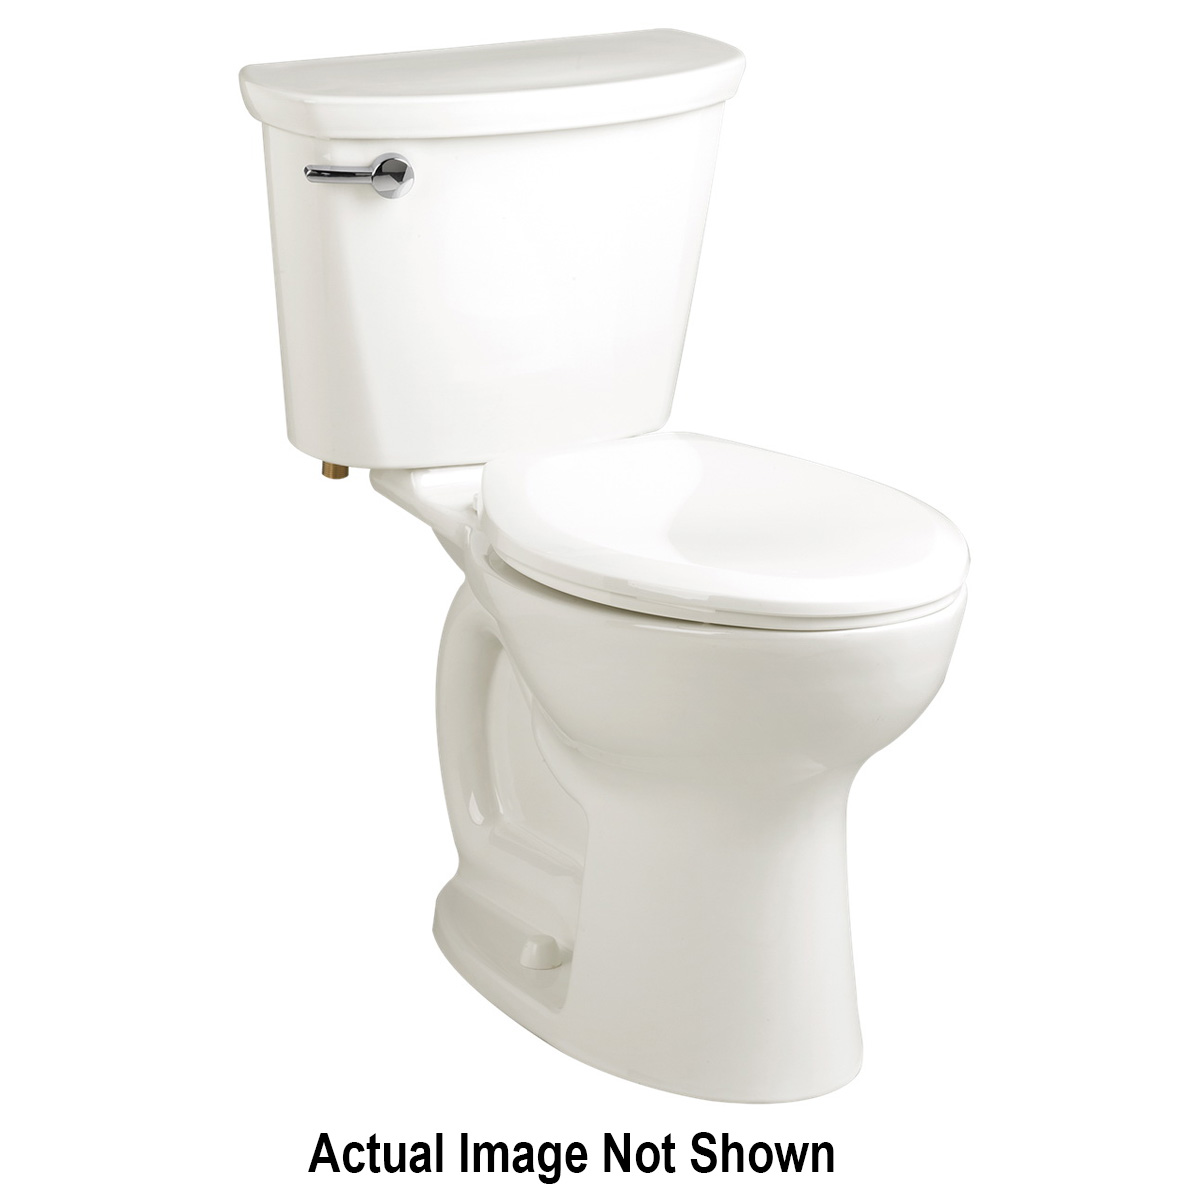 American Standard 3517F101.020 Cadet® Pro™ Right Height™ Toilet Bowl, Elongated, 8 x 9 in Water Surface, 16-1/2 in H Rim, 2-1/8 in Trapway, Import